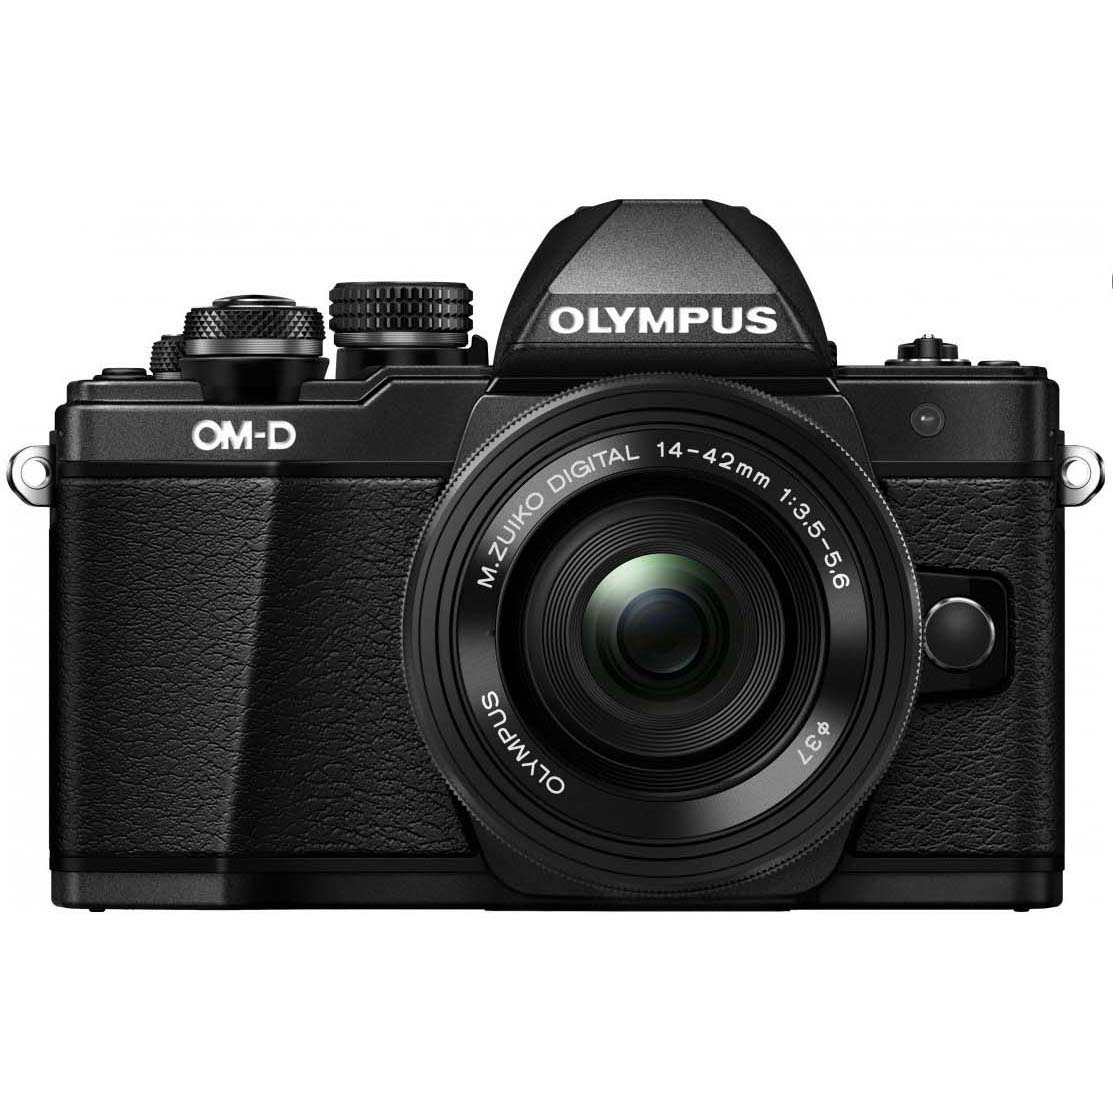 KIT OLYMPUS OM-D EM-10 MARK II + 14-42 II R BLACK/BLACK